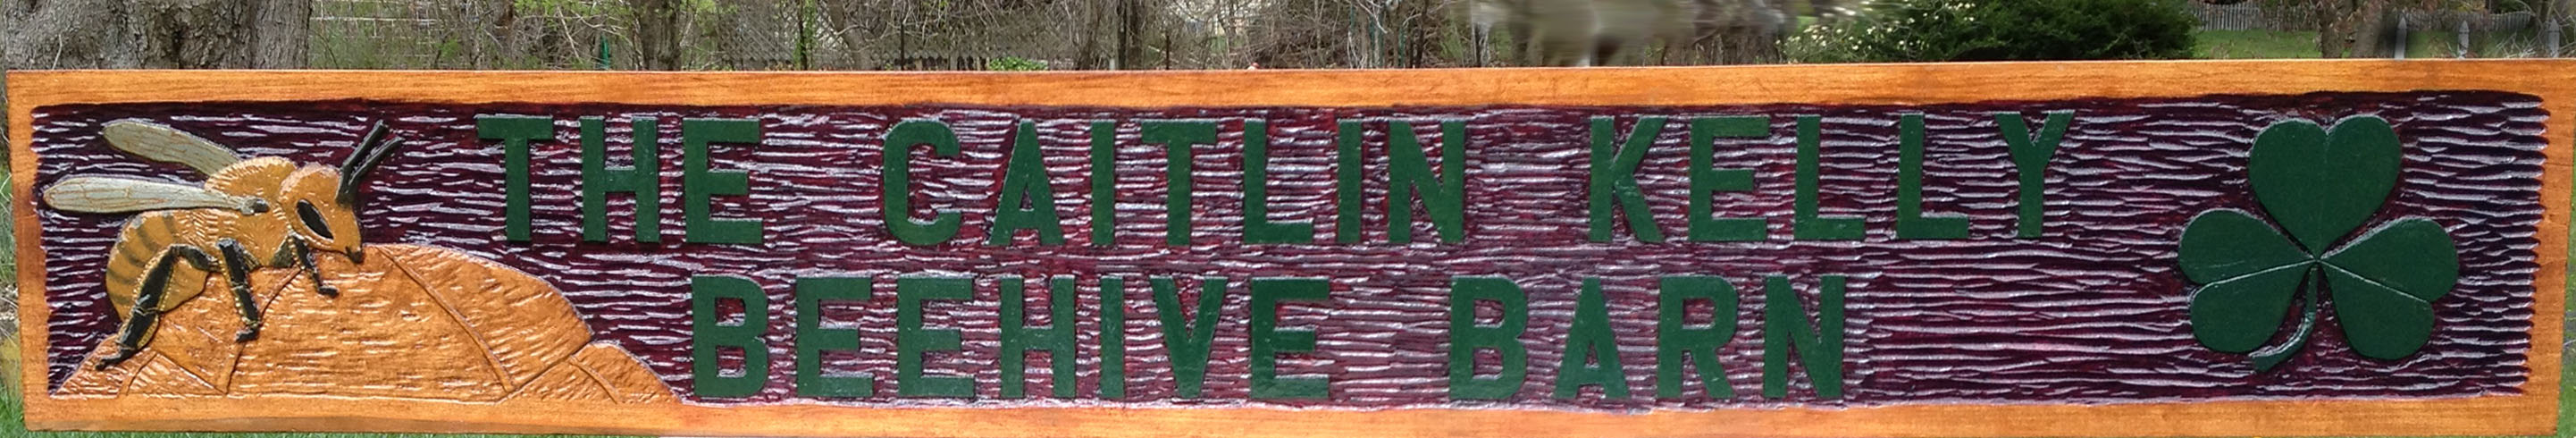 Hand-carved and painted wooden Sign